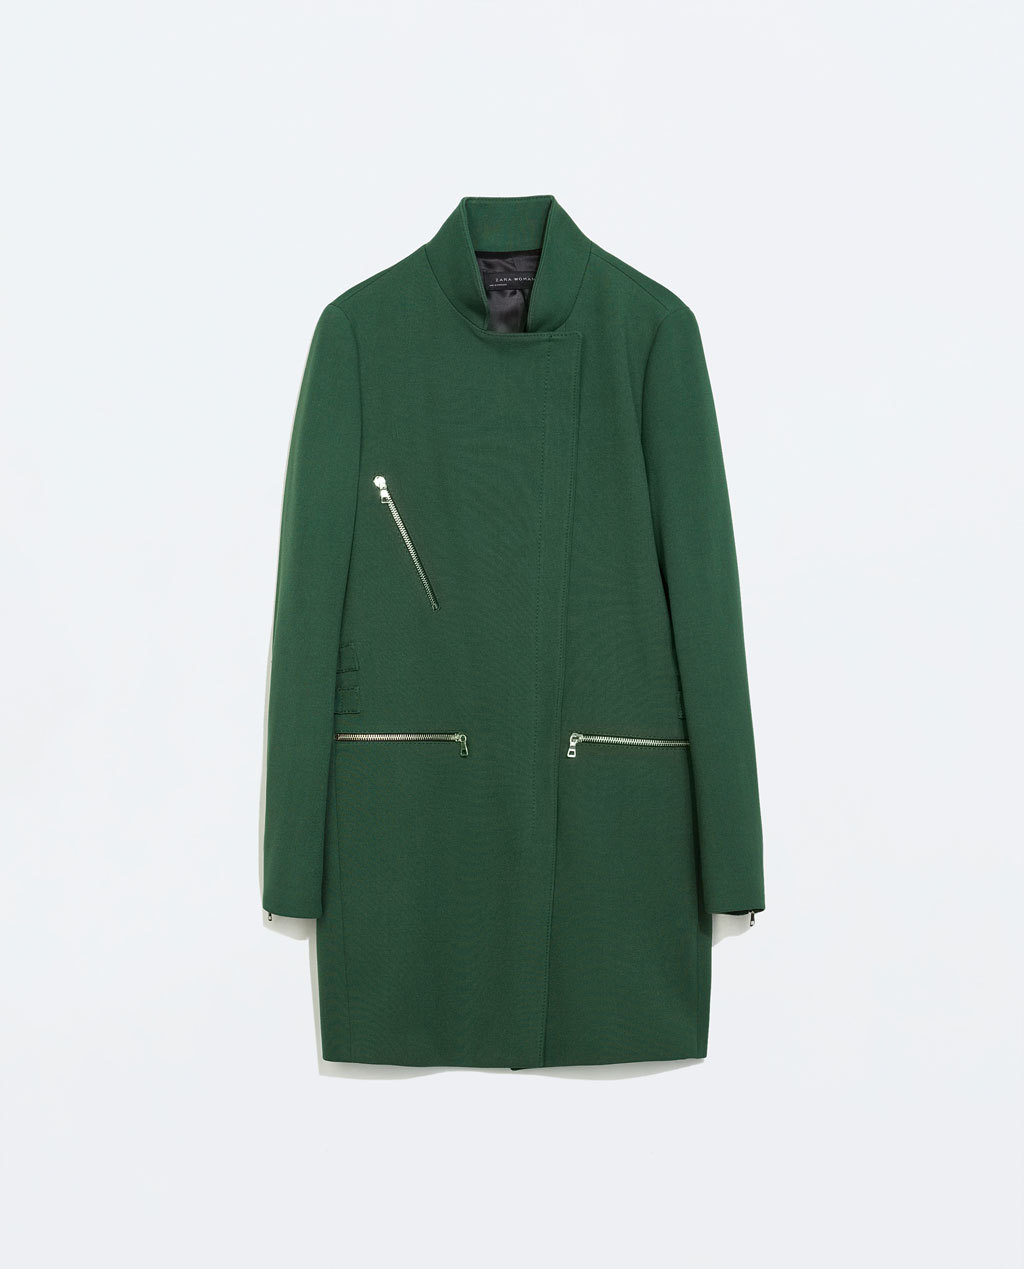 Zip Buckle Coat - pattern: plain; style: single breasted; collar: high neck; length: mid thigh; predominant colour: dark green; secondary colour: silver; occasions: casual, creative work; fit: straight cut (boxy); fibres: polyester/polyamide - mix; back detail: back vent/flap at back; sleeve length: long sleeve; sleeve style: standard; collar break: high/illusion of break when open; pattern type: fabric; texture group: woven bulky/heavy; trends: zesty shades; season: a/w 2014; hip detail: front pockets at hip